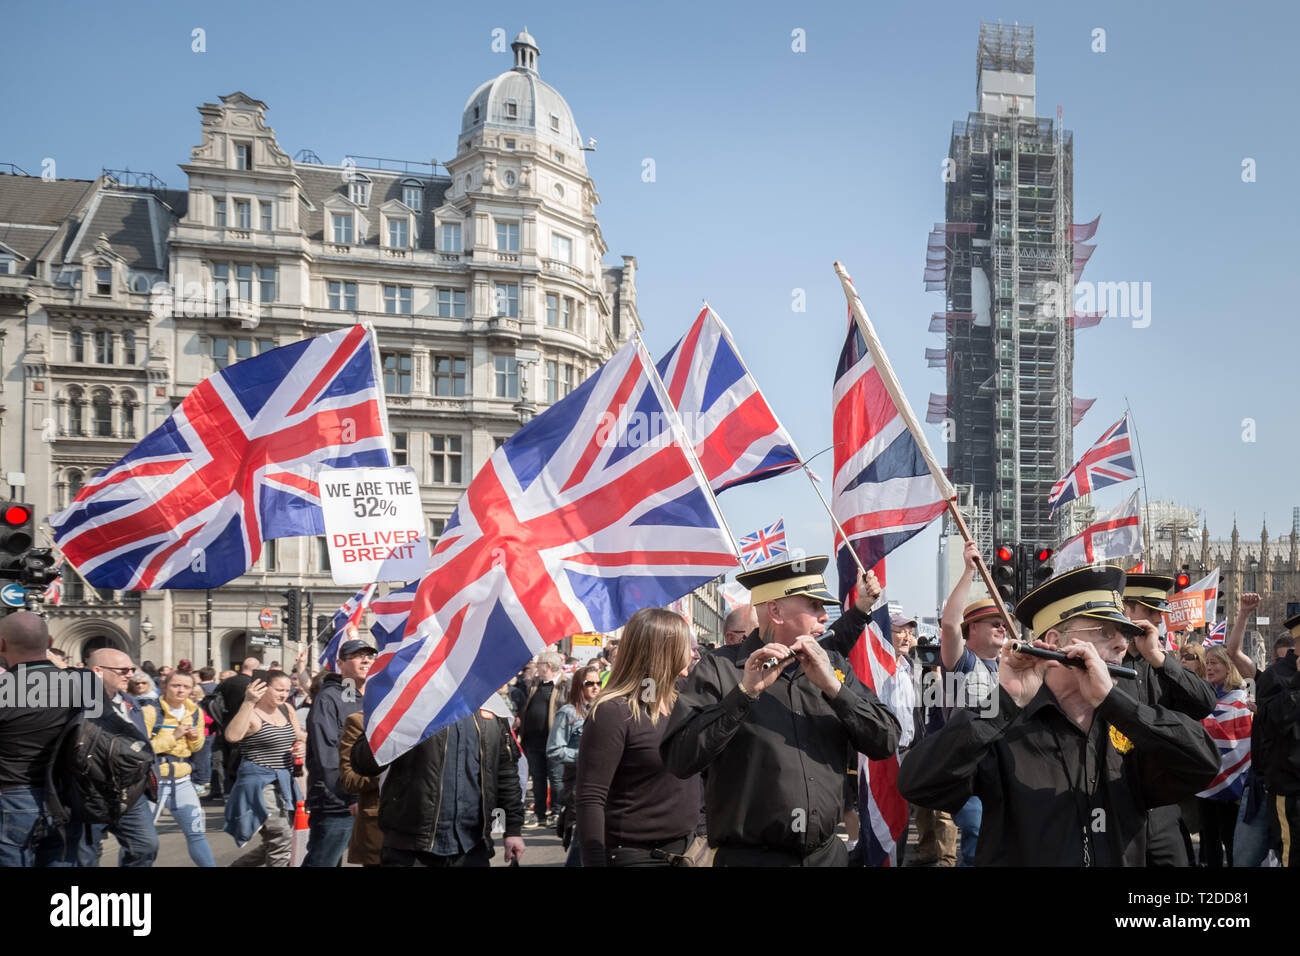 Scottish Loyalist flute band joins pro-Brexit supporters for 'Brexit Day' protest in Westminster demanding Britain leaves the EU without delay. - Stock Image